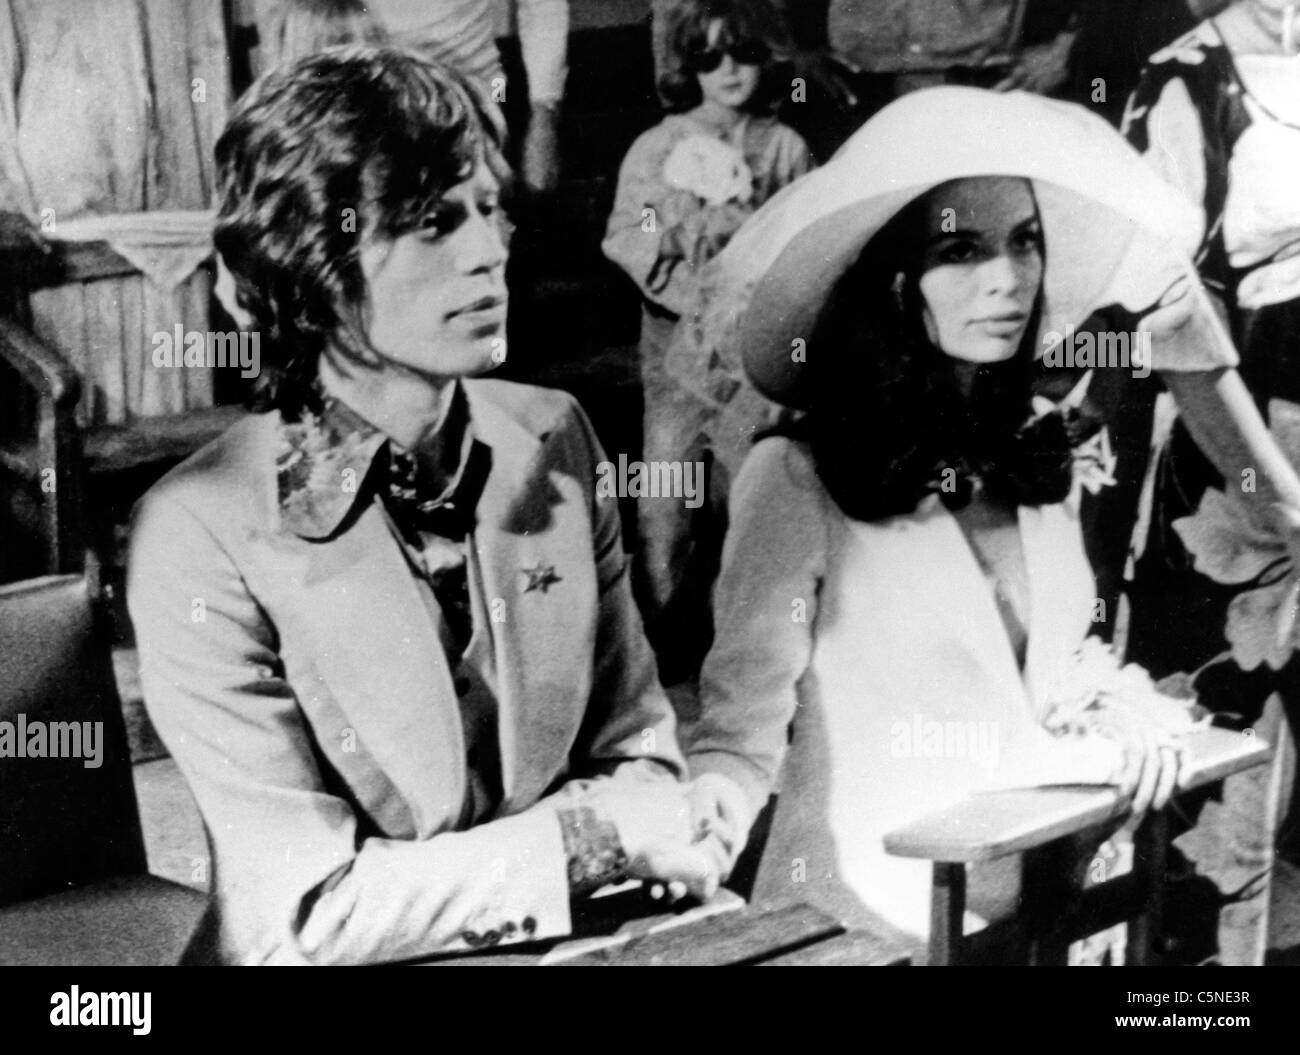 wedding mick jagger and bianca jagger 70 stock photo